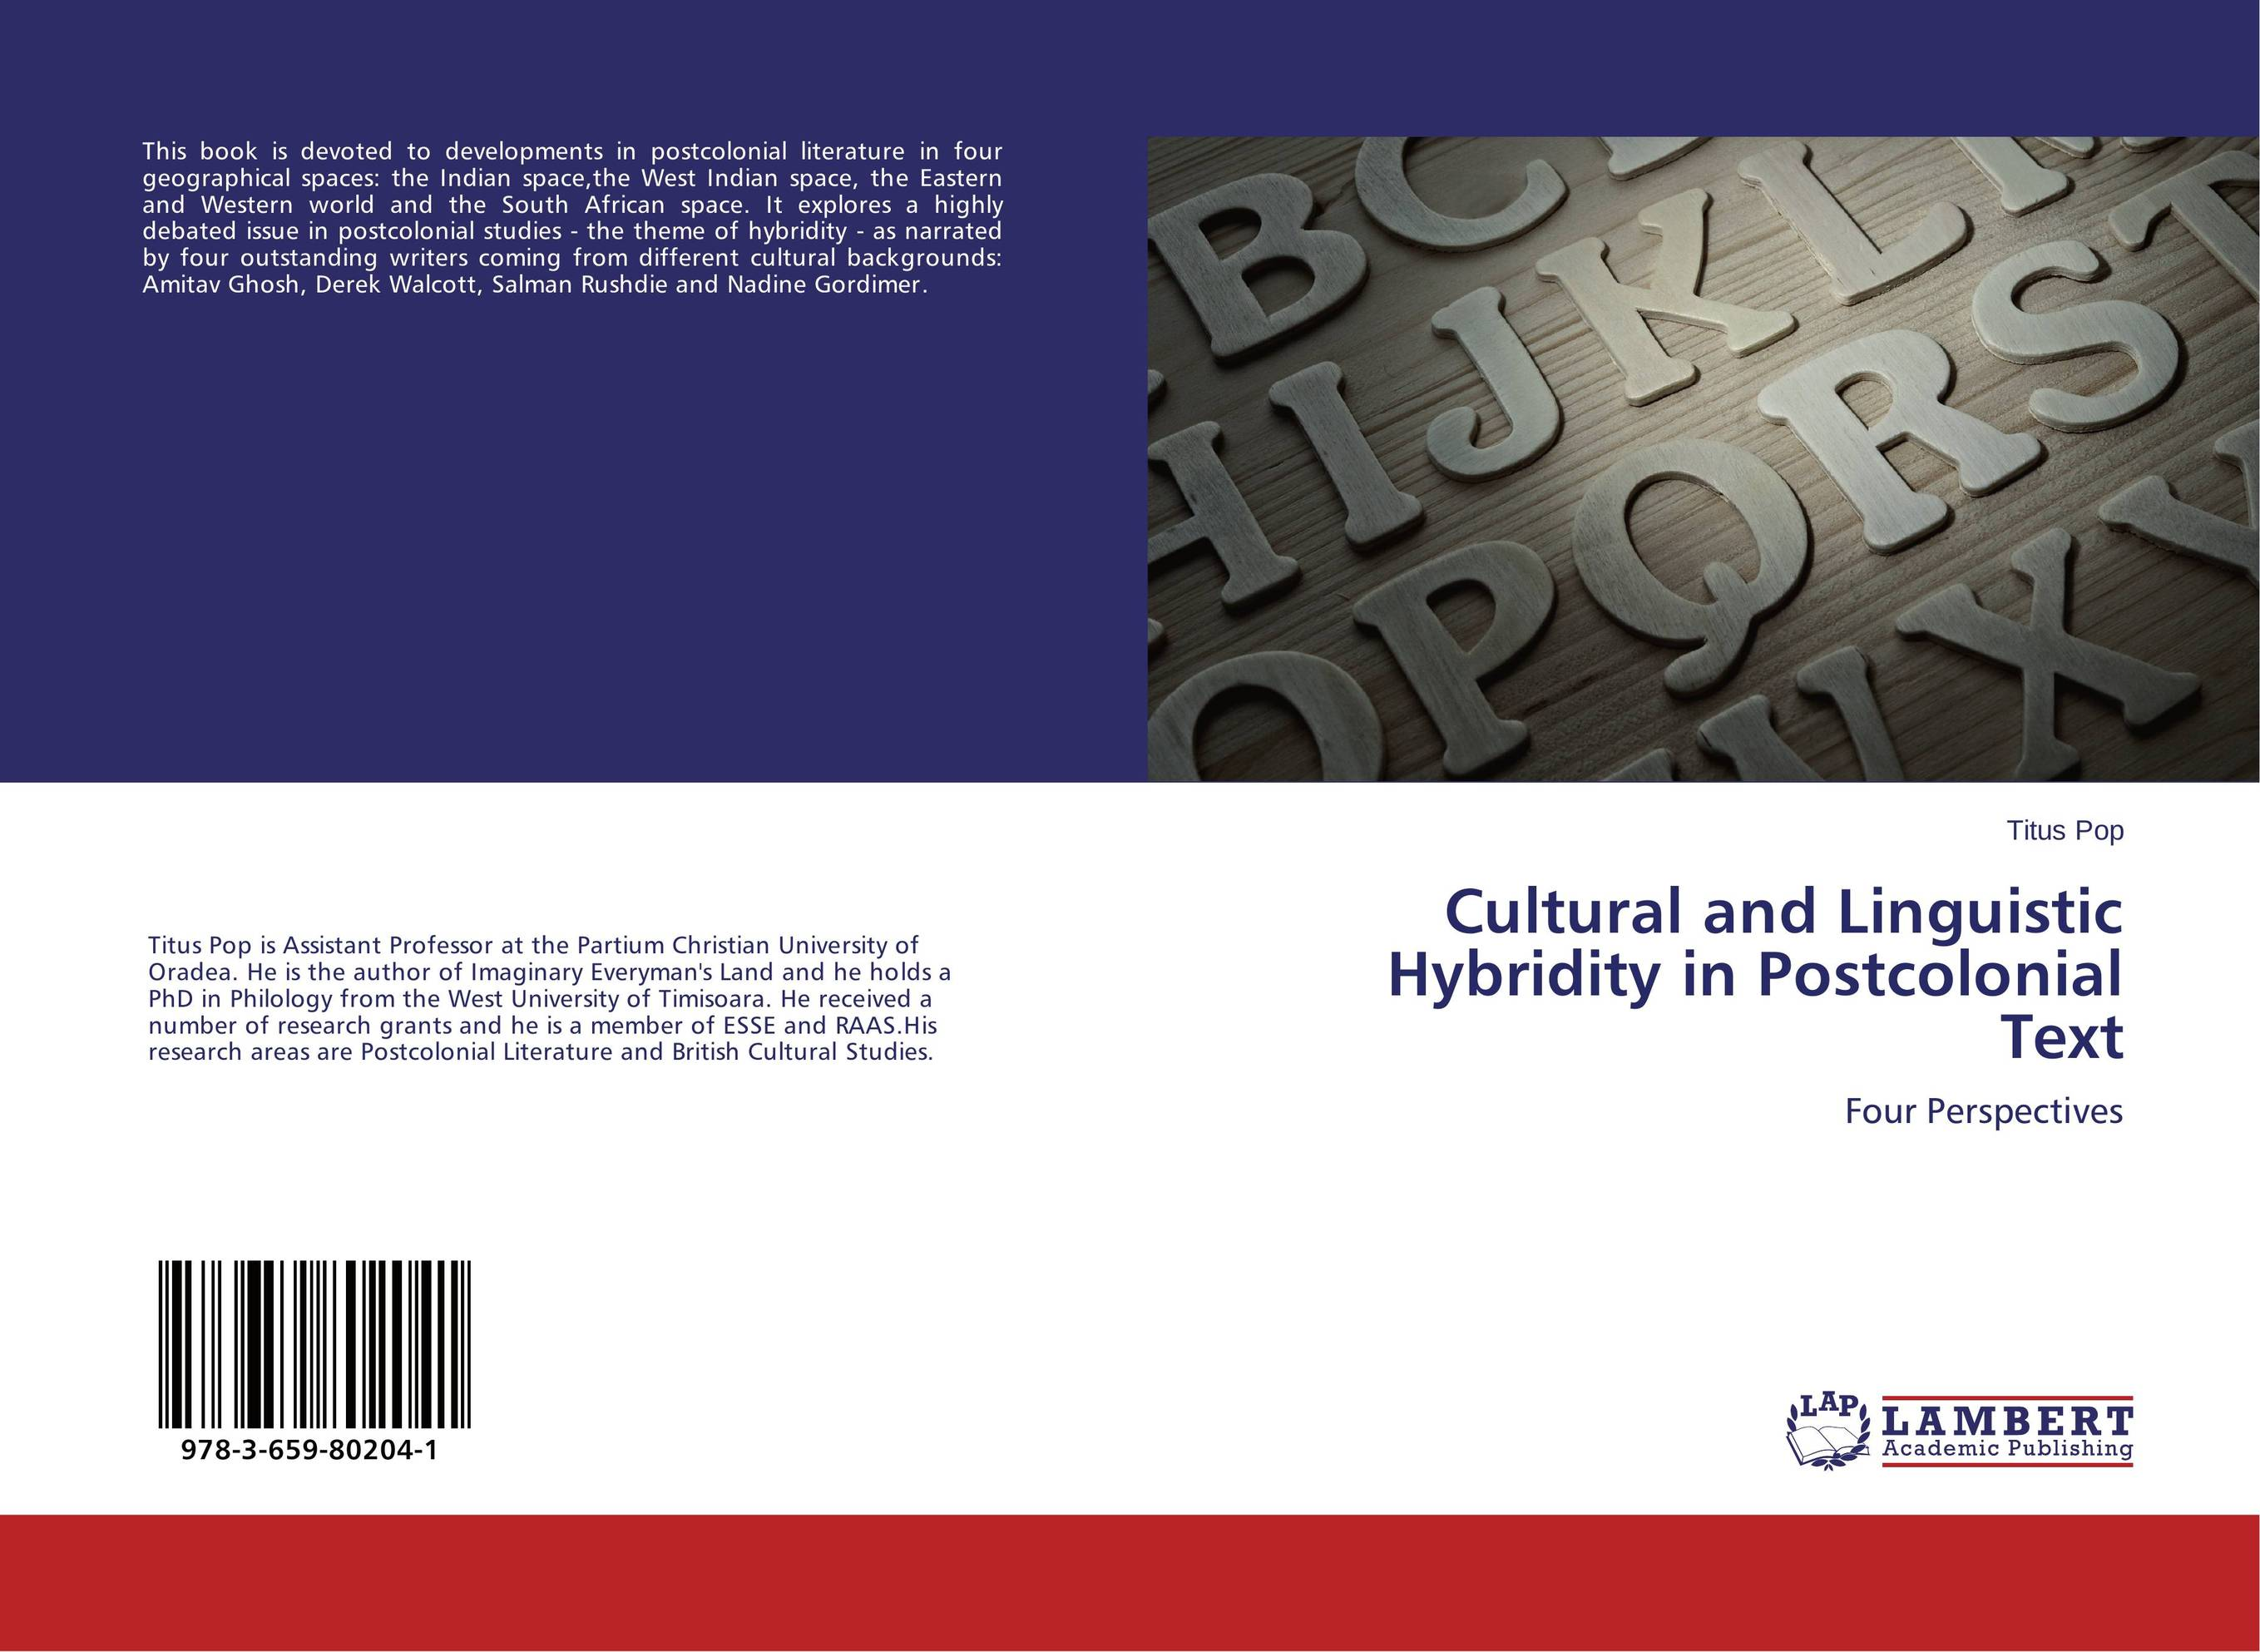 Cultural and Linguistic Hybridity in Postcolonial Text binod kumar and anil pandey genetic divergence and heterosis in indian mustard